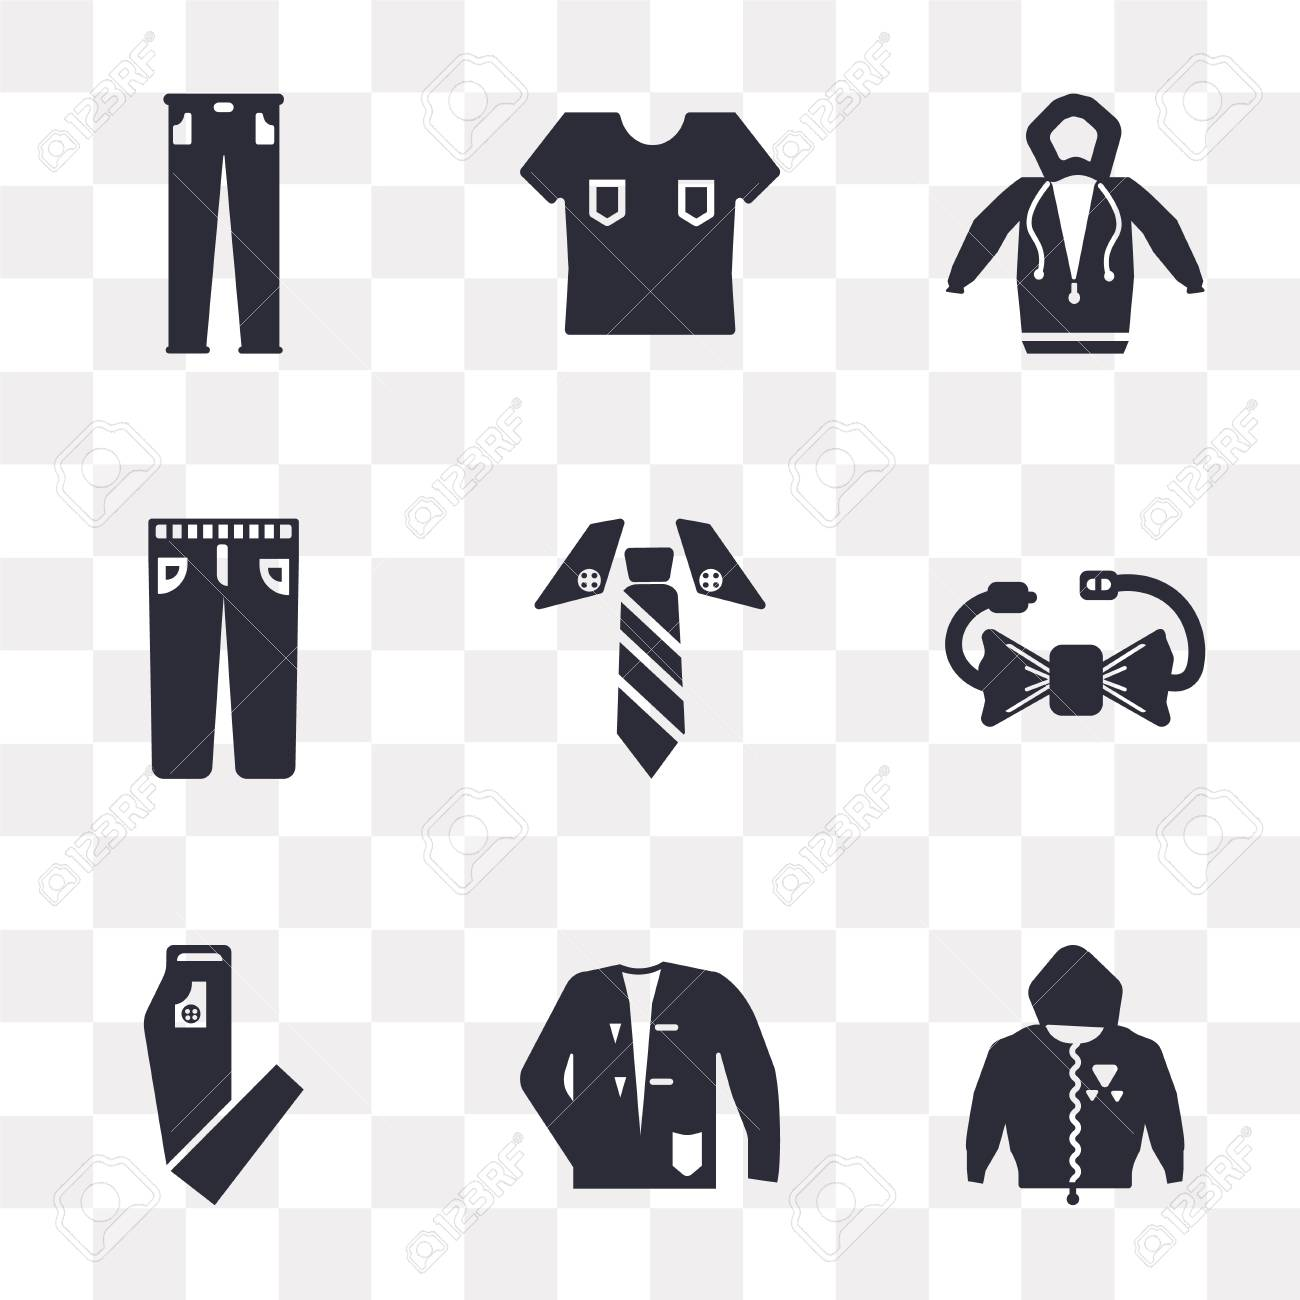 3afb6cf622ab3 Set Of 9 simple transparency icons such as Hoodie, Coat, Pants,..